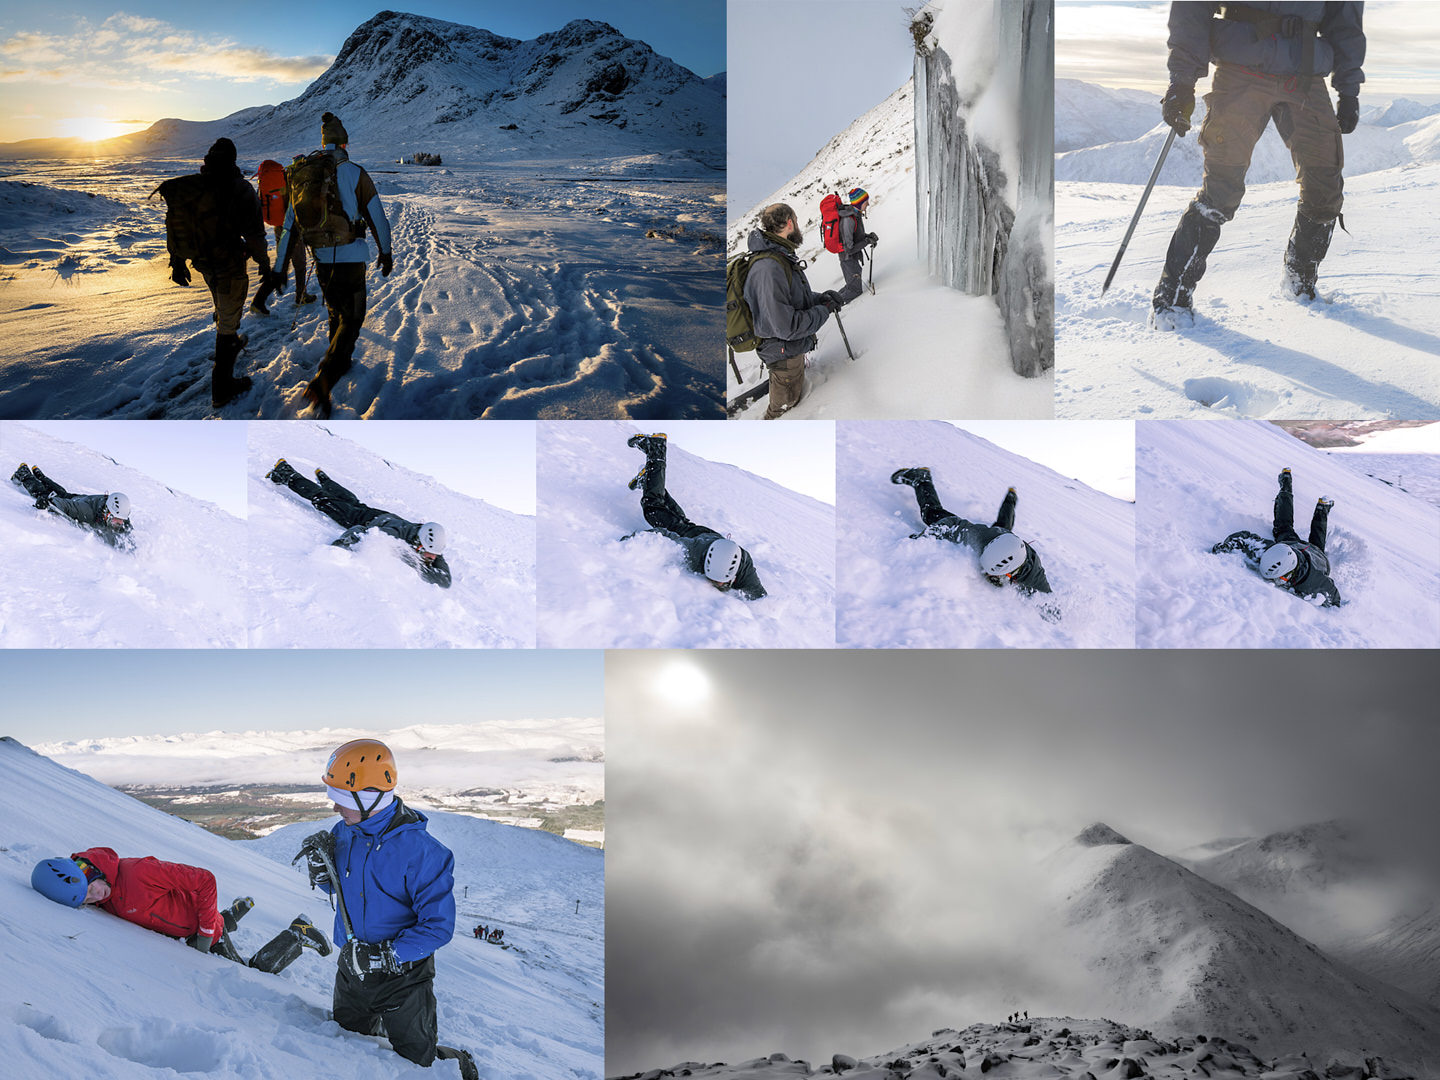 Two hikers ascend a winter slope, backdropped by cloud and mountain